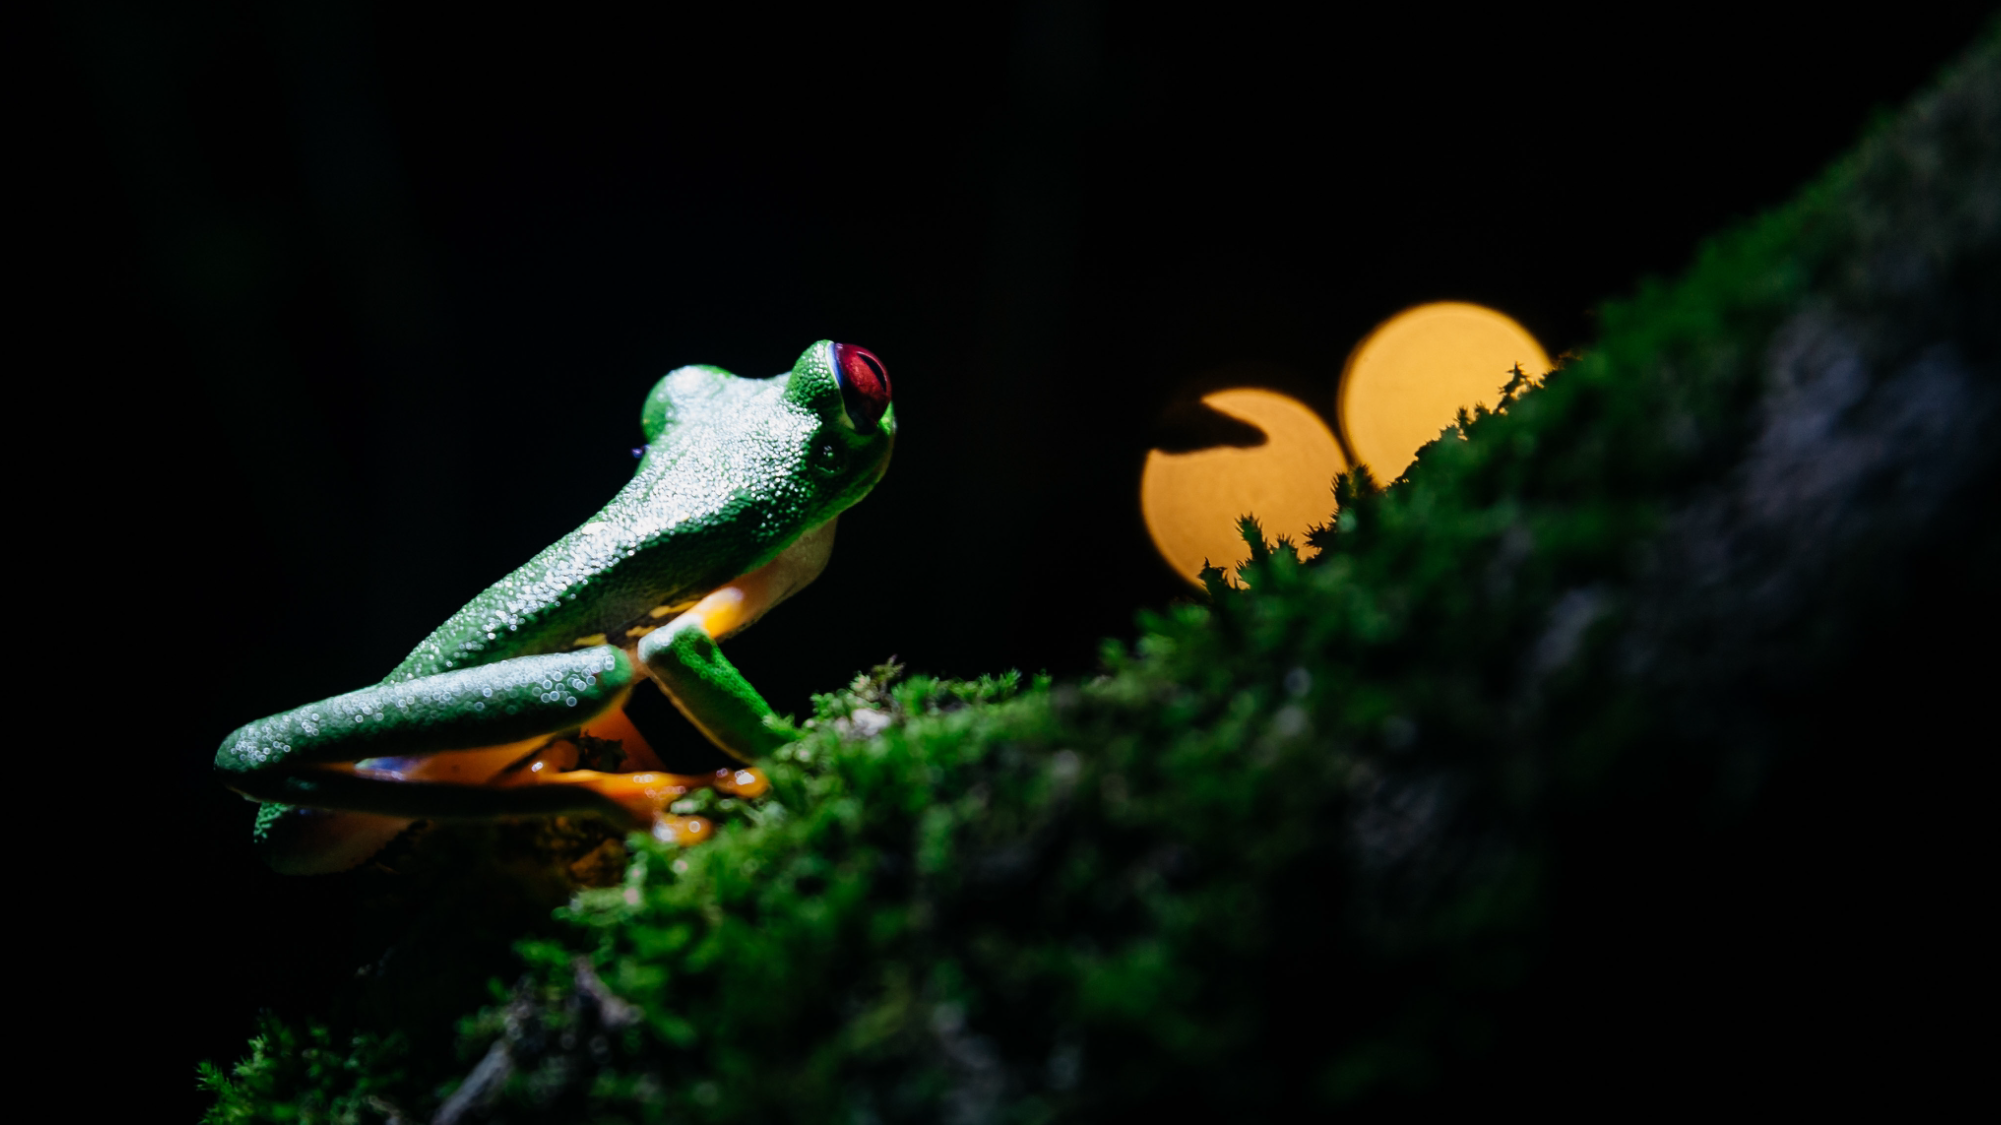 After searching for one of the classic symbols of Costa Rica for nearly 6 weeks, we finally found the red-eyed green tree frog (non-poisonous)in Punta Mona. It was worth the wait, as it sat peacefully on the mossy branch, and allowed us an up close encounter.